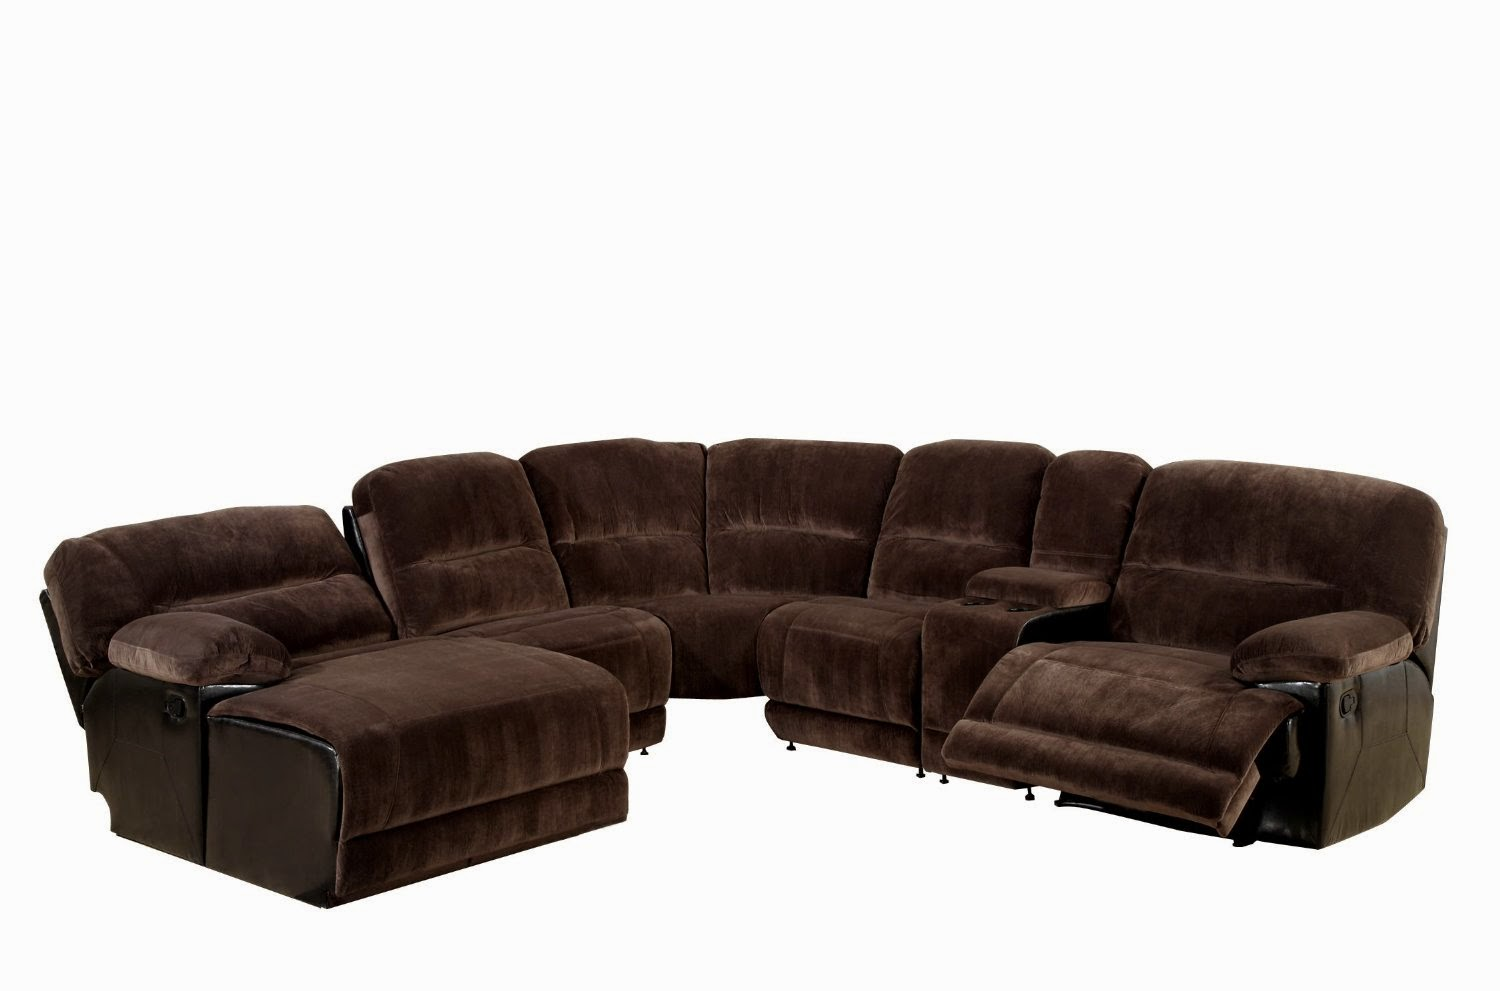 Reclining sofas for sale cheap saddle microfiber for Contemporary sectional sofas